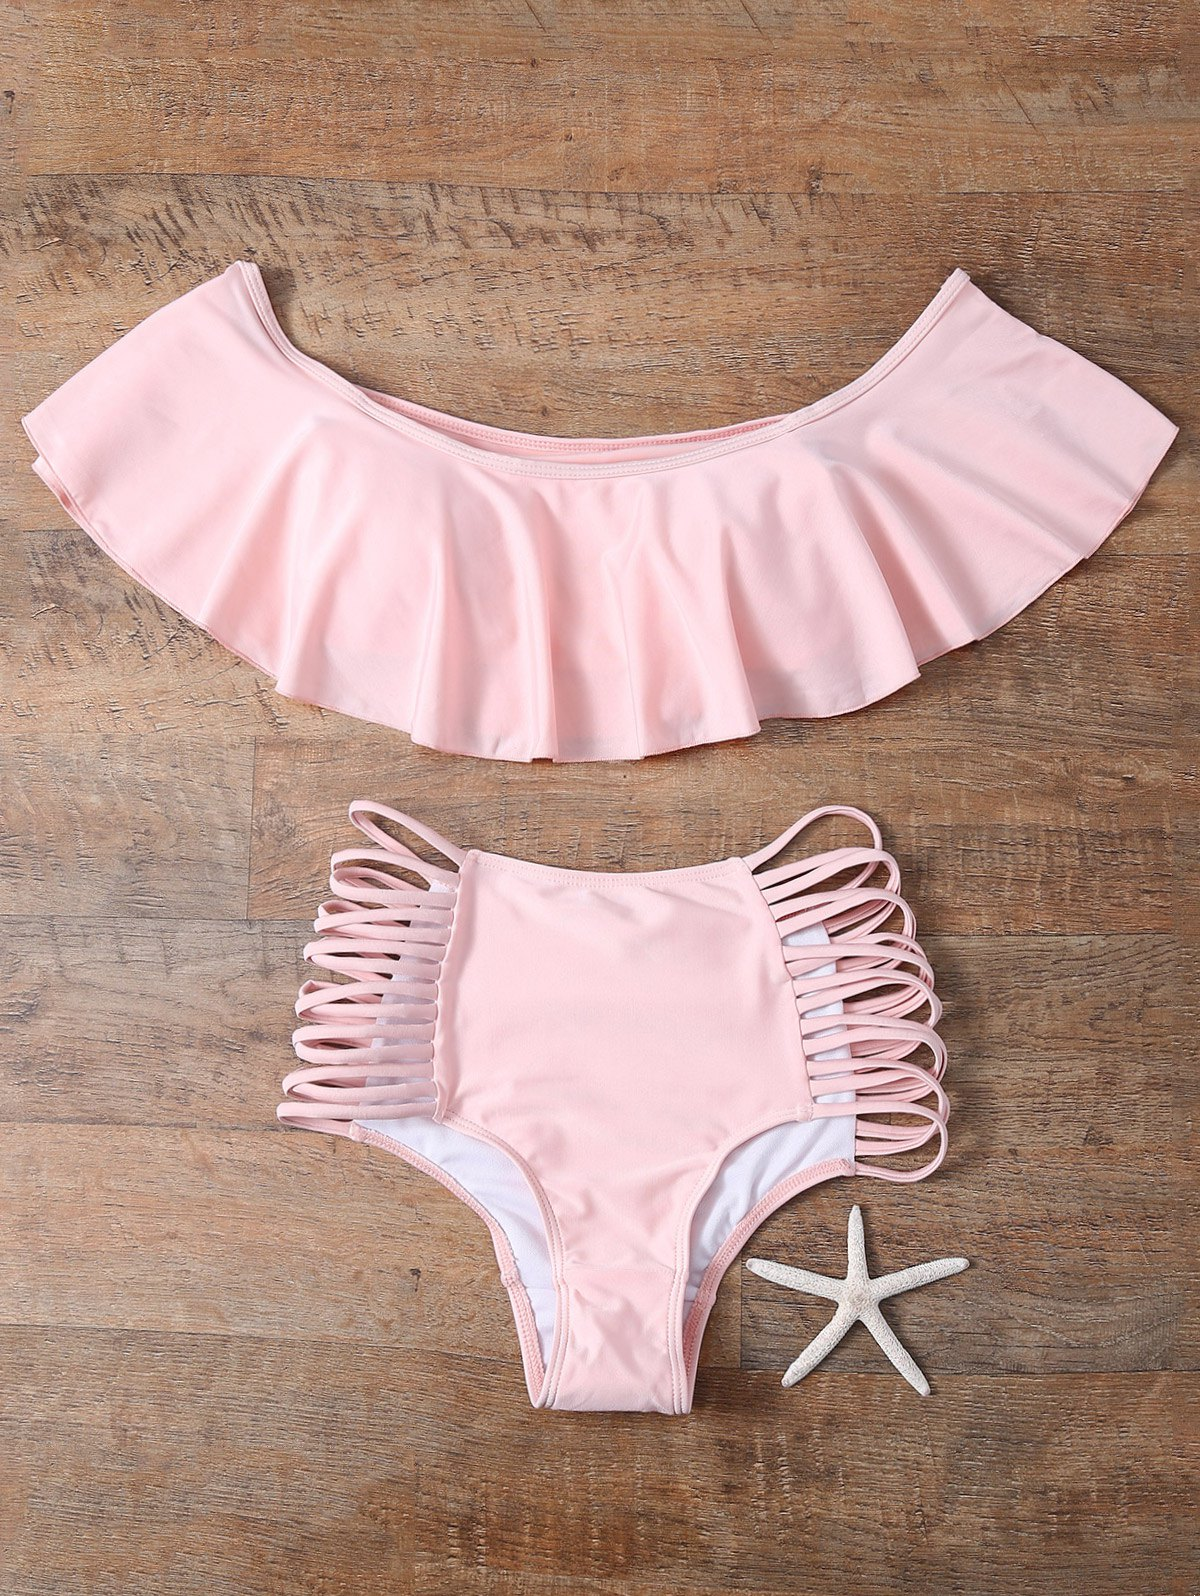 e99a5e7b04cd4 Off The Shoulder Cutout Flounced Bikini Set - Pink S on Luulla